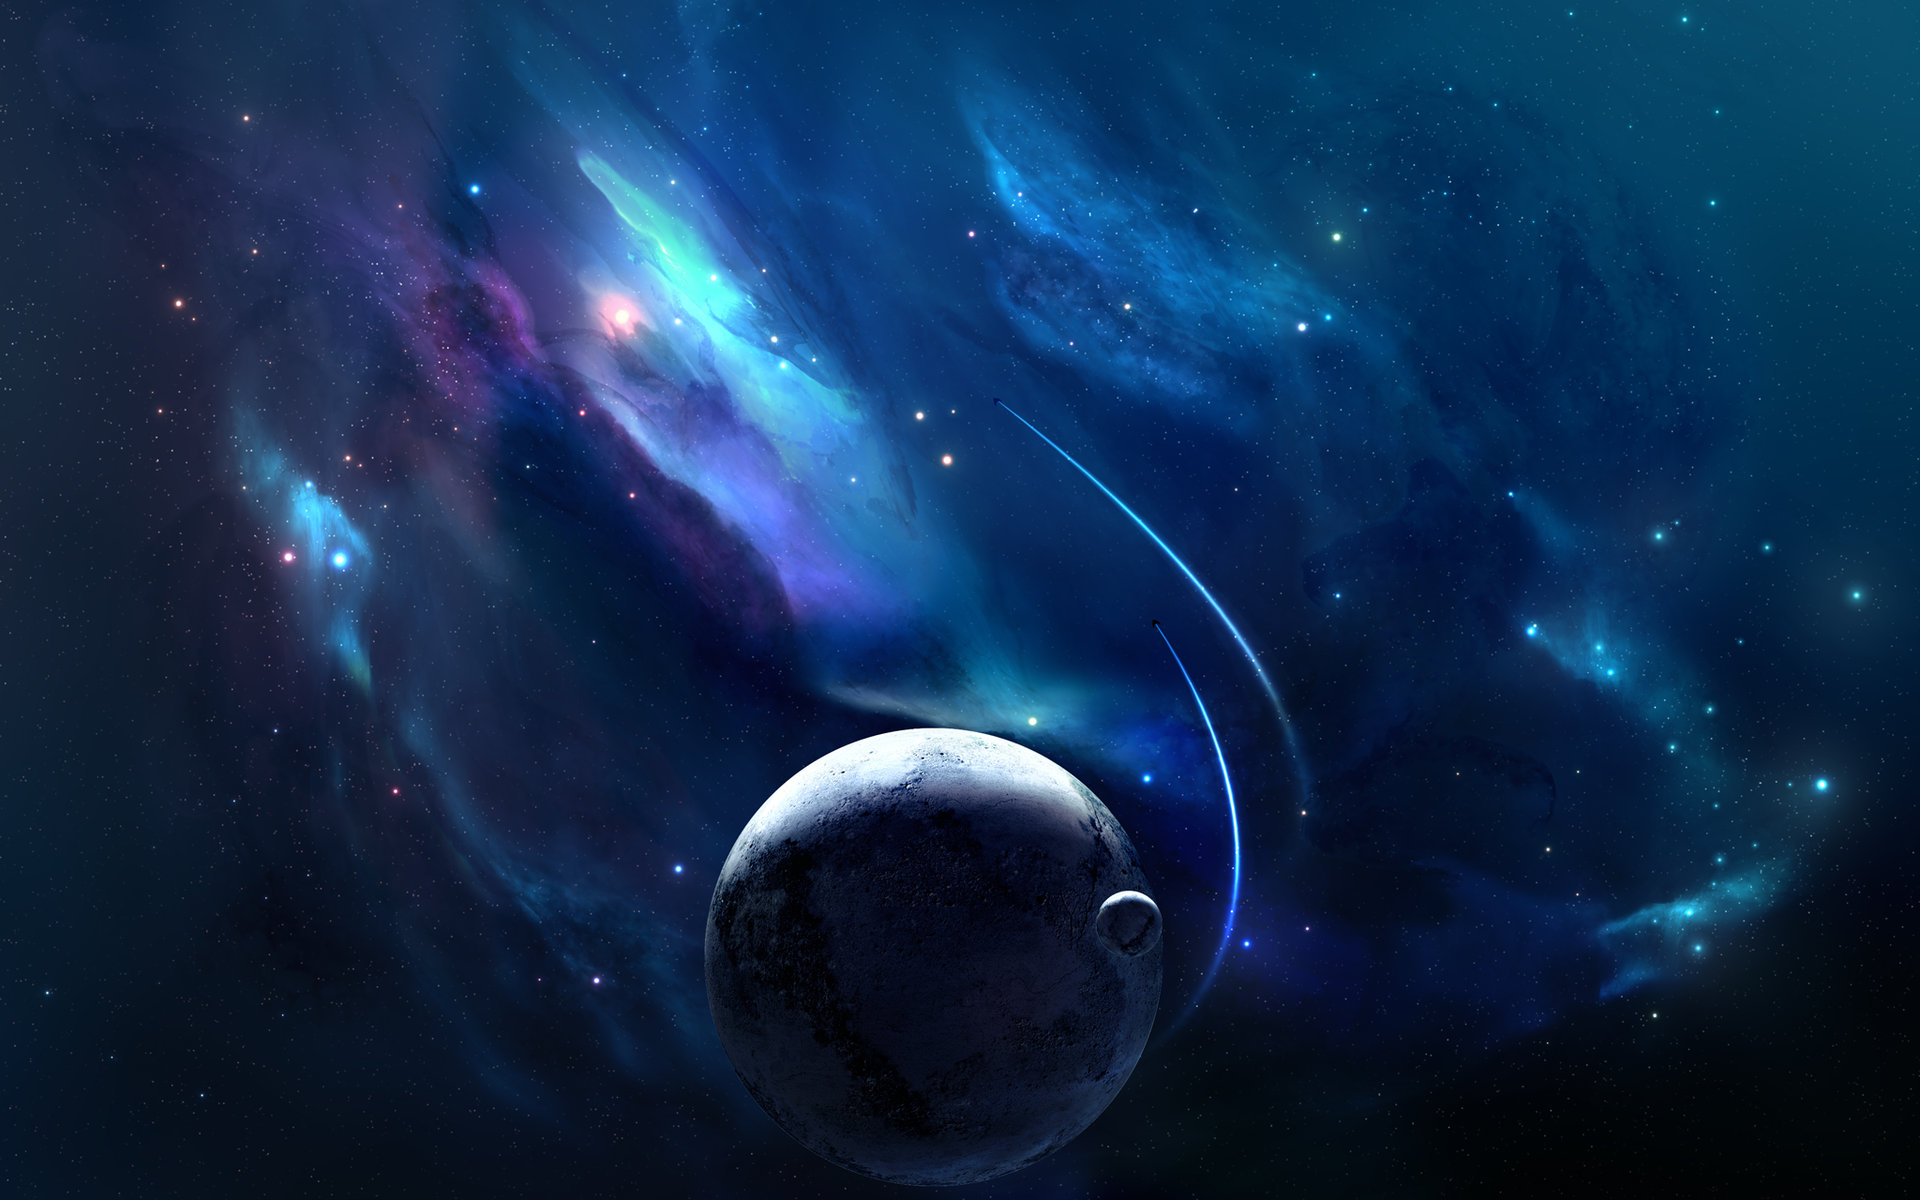 Dark blue space wallpaper wallpapersafari - Dark space hd ...